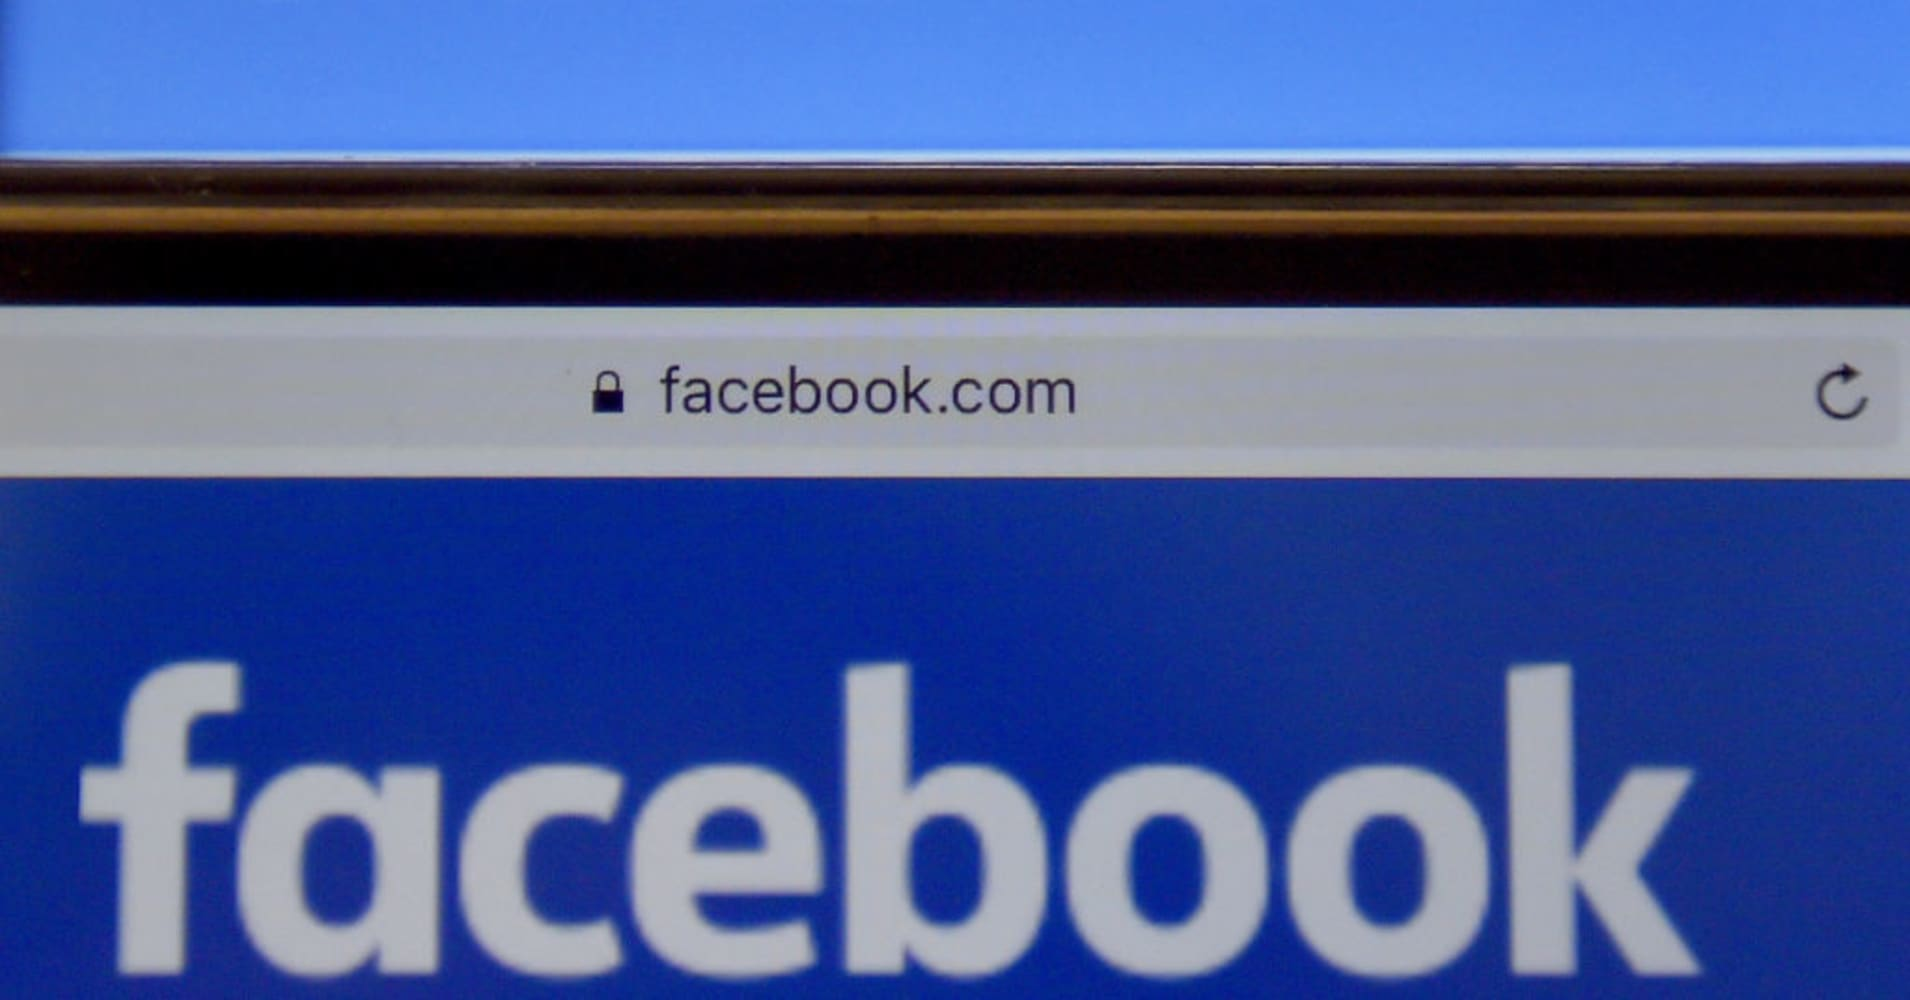 The solution to Facebook's ad problem may be taking cues from TV, author says